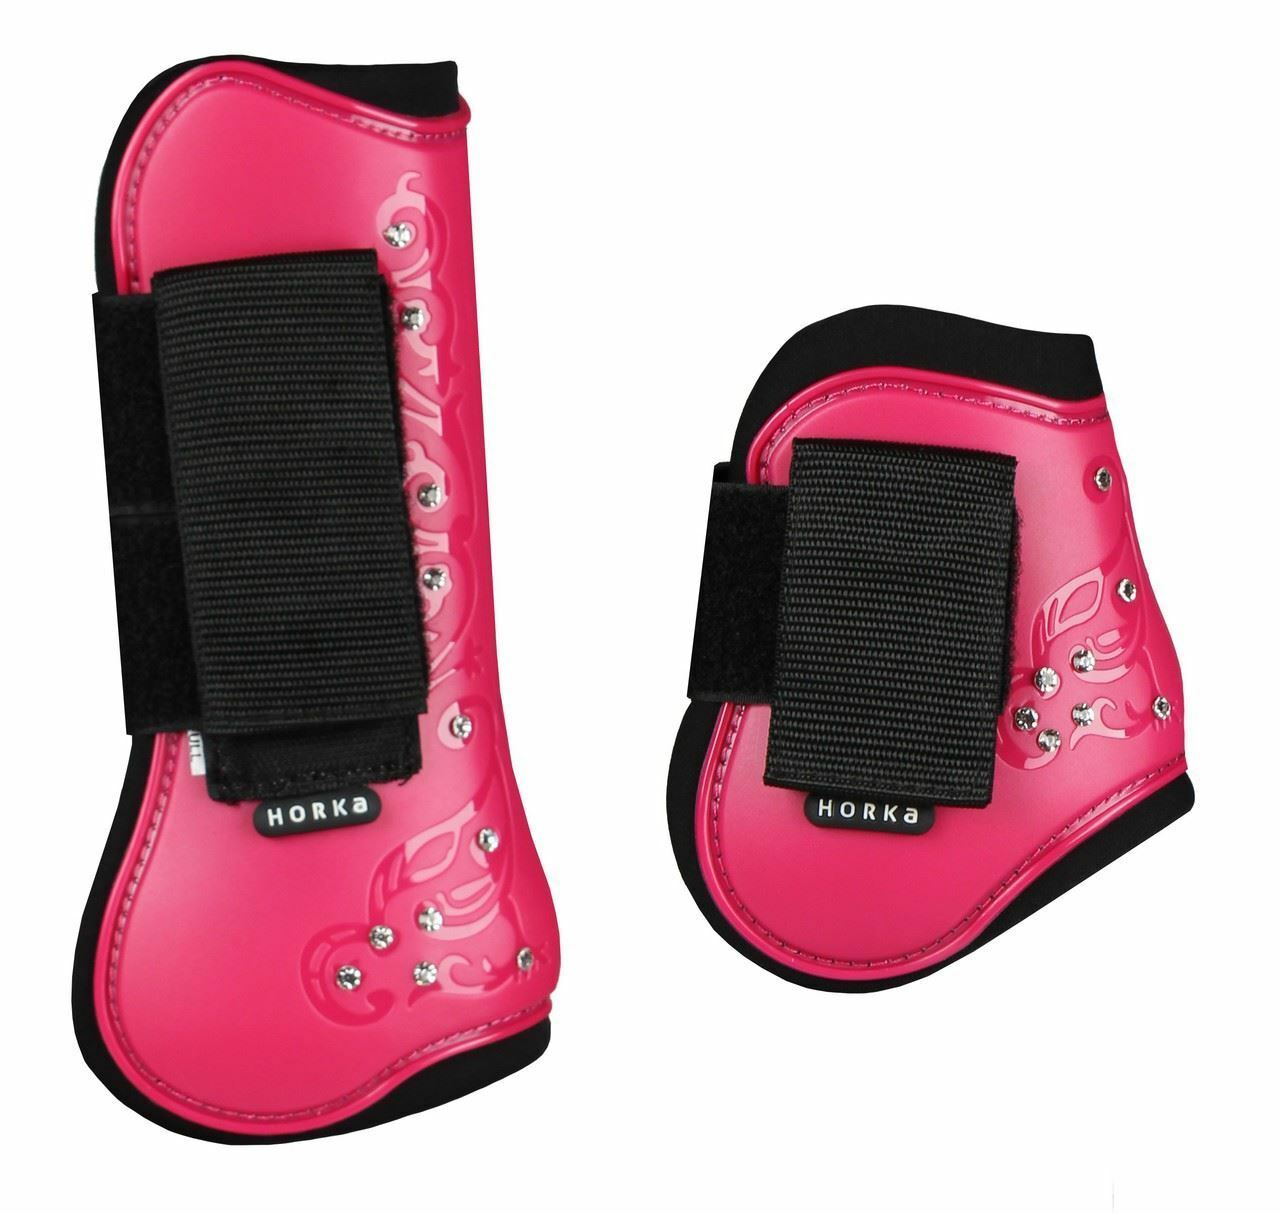 Horka Royal Crystal Horse Riding Equestrian Predection Patterned Tendon Boots